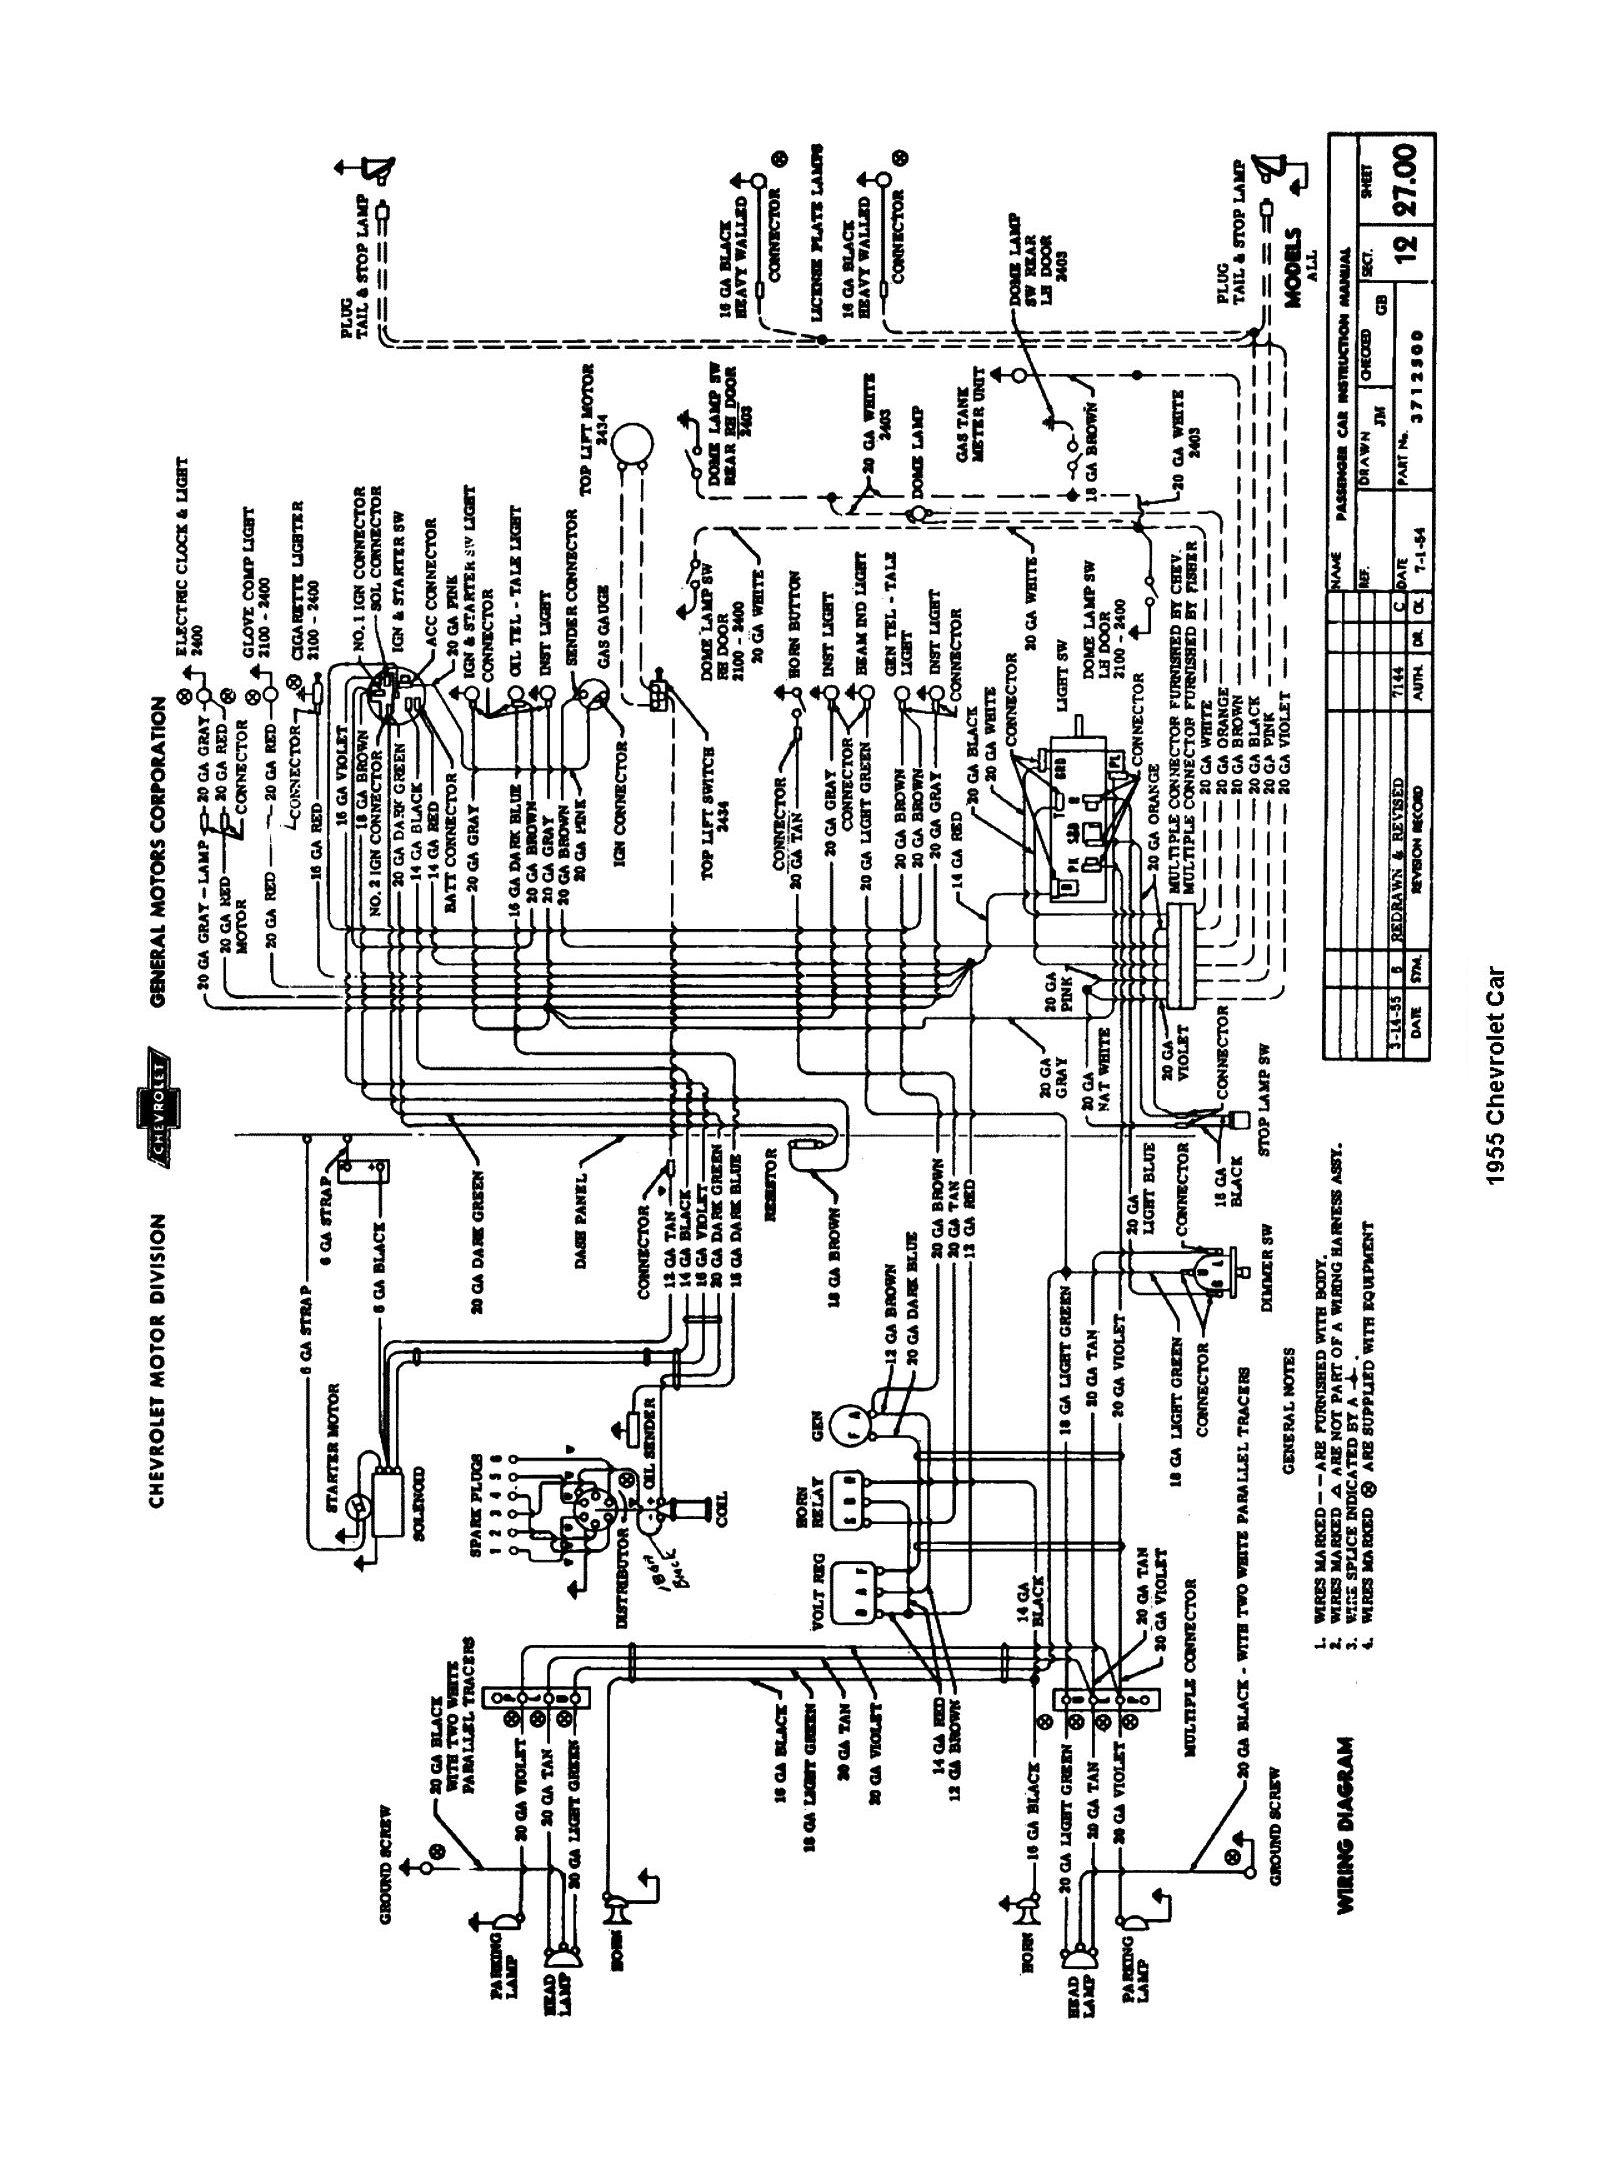 International truck wiring diagram manual download wiring diagram wiring diagram sheets detail name international truck wiring diagram manual swarovskicordoba Choice Image